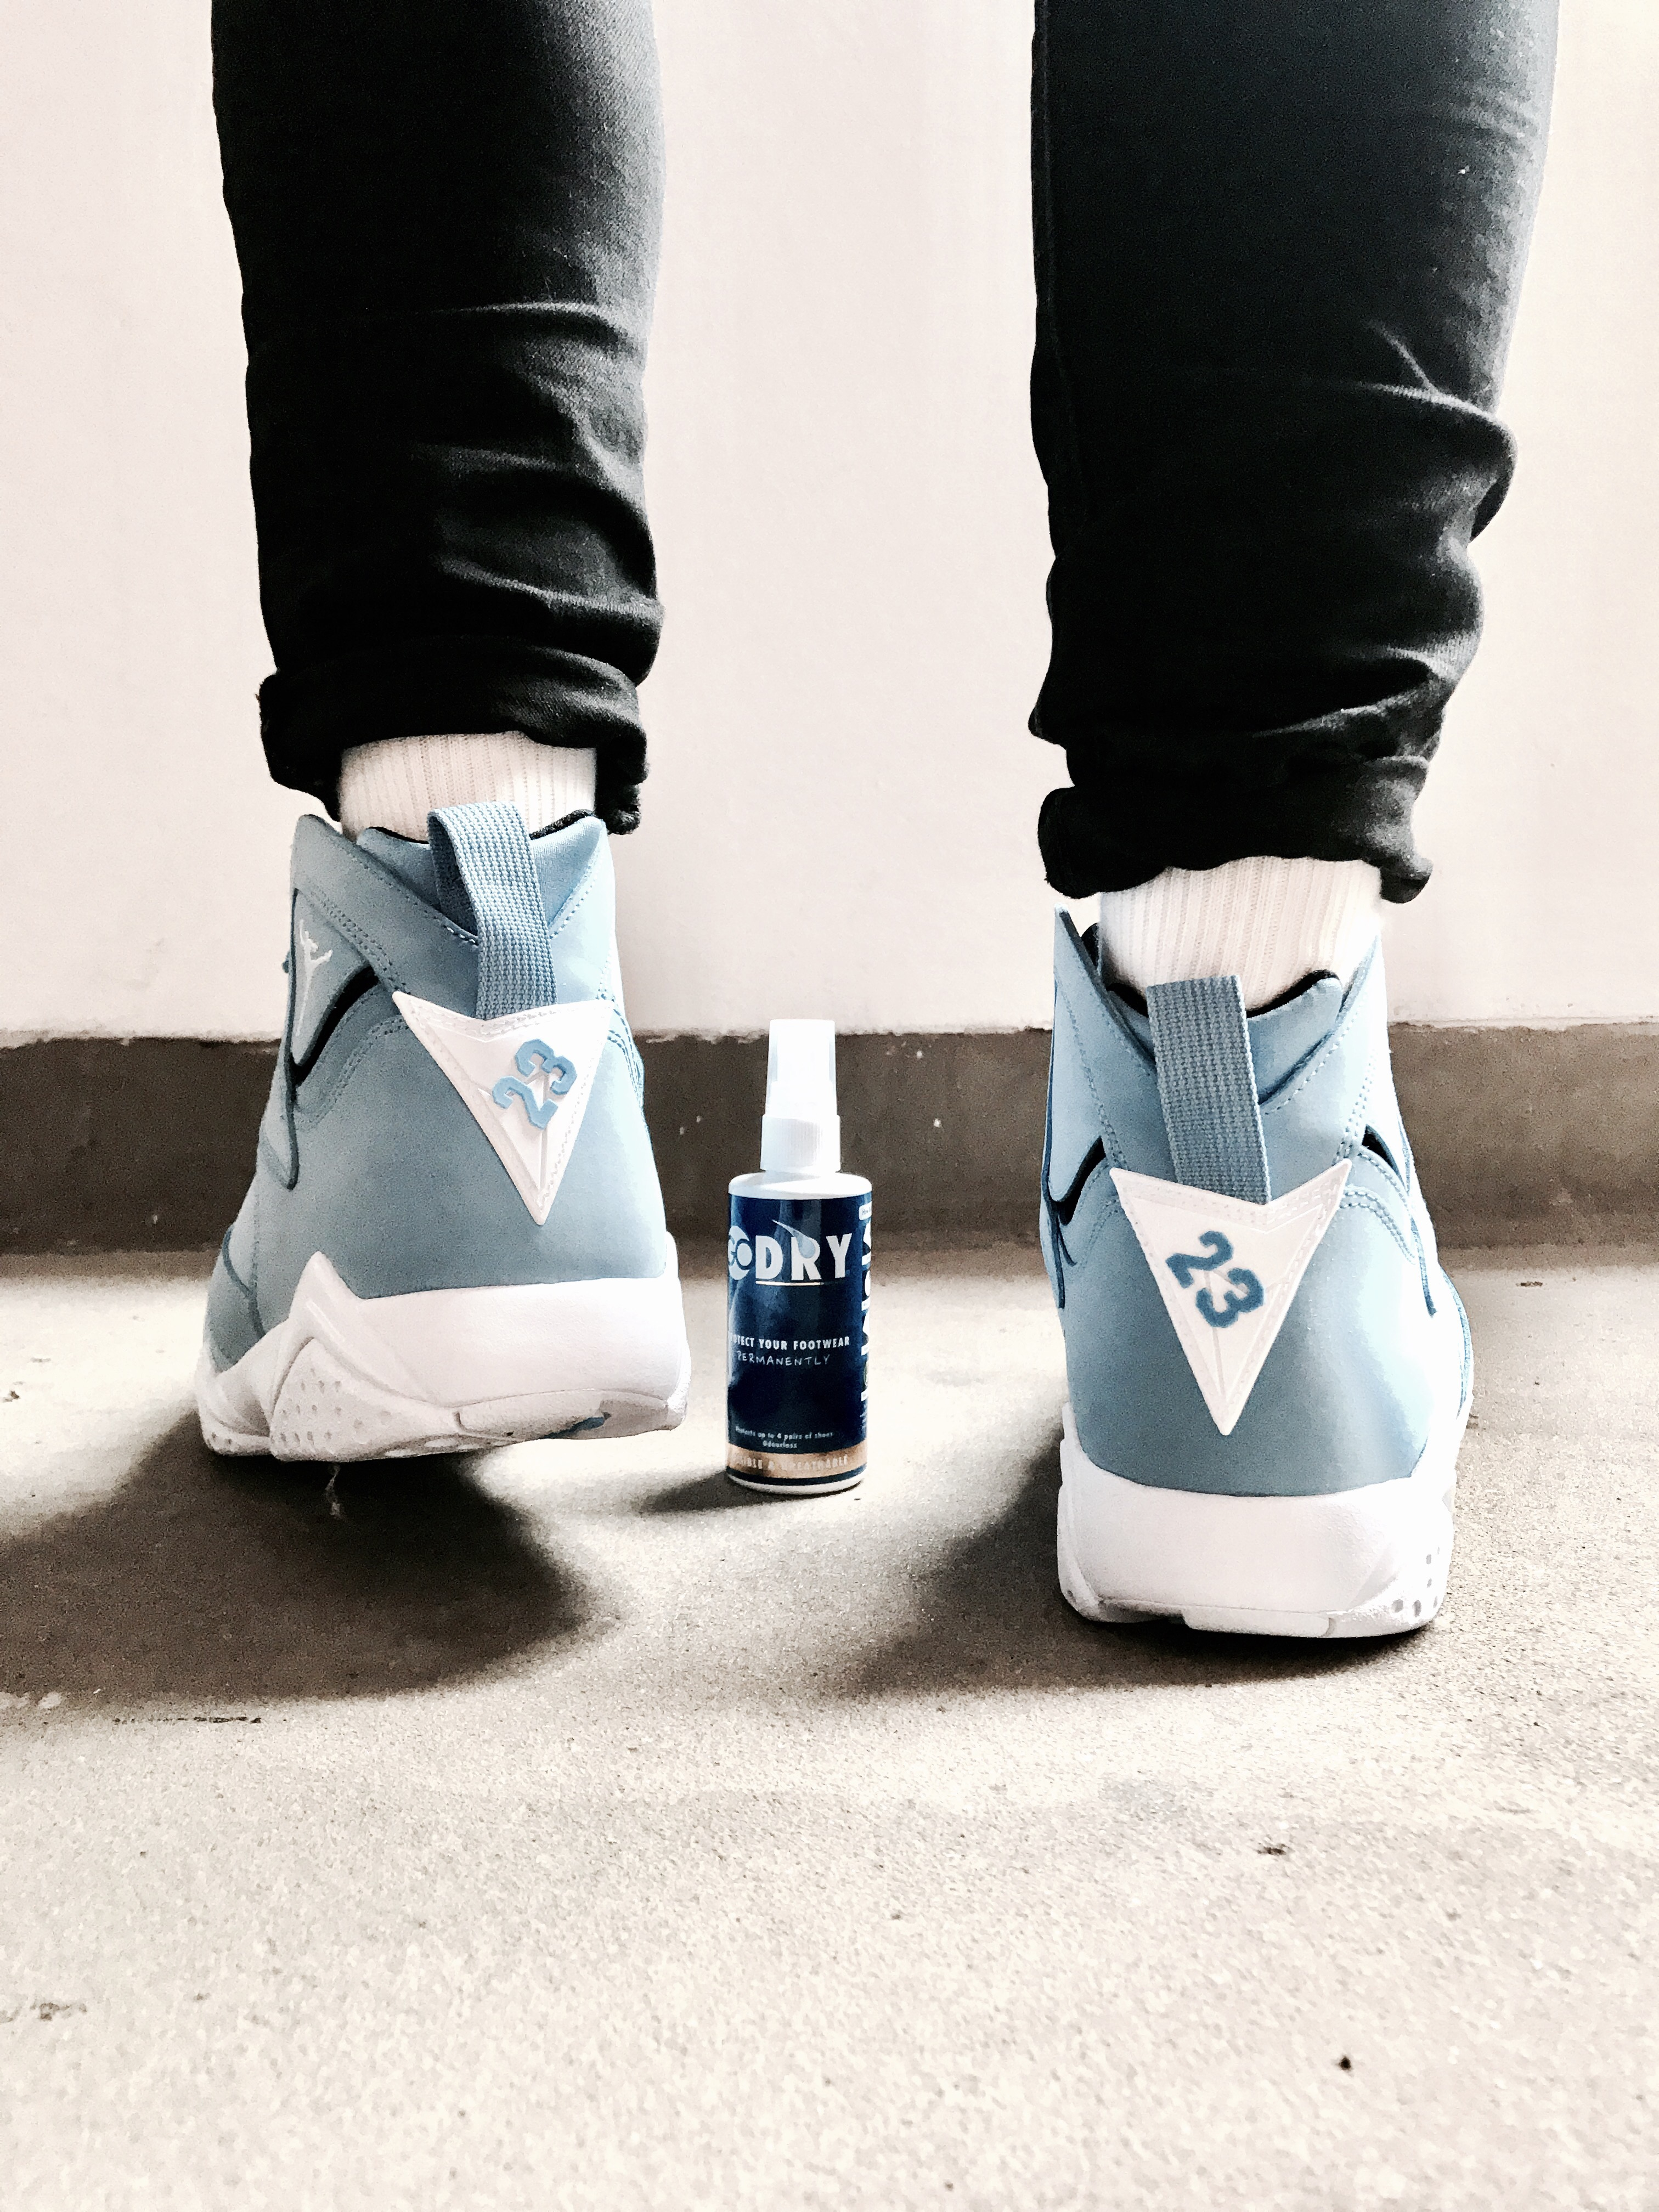 8fb7d243fa7 White accents such as Jordan branding helps keep the shoe balanced and clean,  and they feature a handy pull-tab to help lug your feet into the  well-fitted, ...